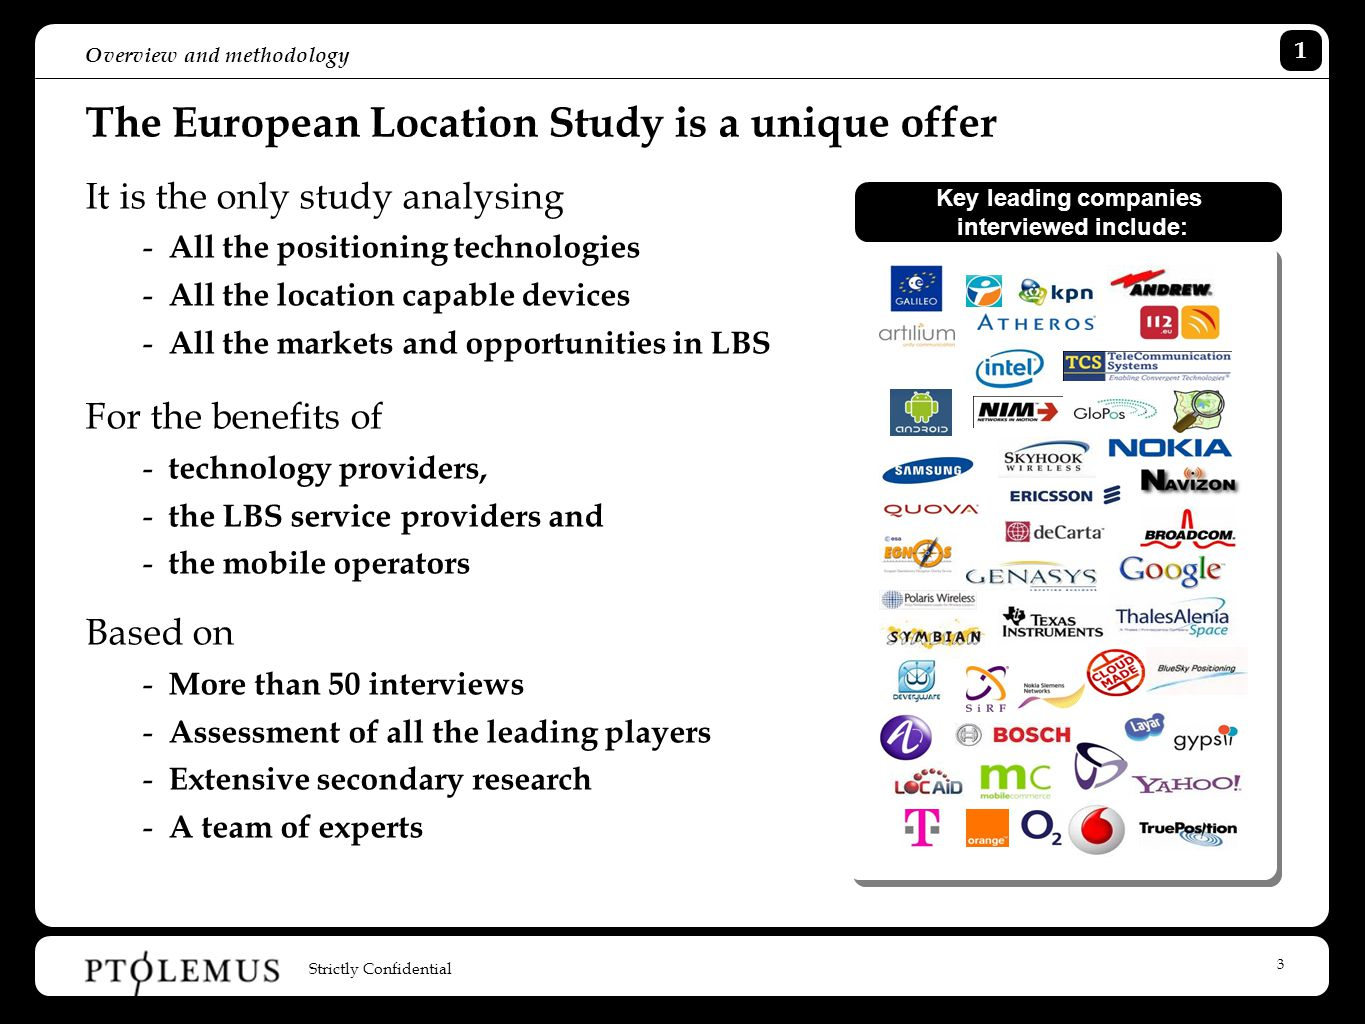 4 Overview and methodology The European Location Study covers all the bases The study will show you: - The full extend of location applications and the devices that powers them - How today's positioning technologies match the demand - How each technologies work and compare - Who are the leaders and losers Plus you will get: - 3 case studies of models that works - Main player's strategies - Overall quantitative analysis - Expected growth calculations to 2014 - Independent, reliable and well informed evaluation of the key trends 200 pages 50 interviews 18 location technologies 16 vertical markets analysed 6 months 1 Study Strictly Confidential 1